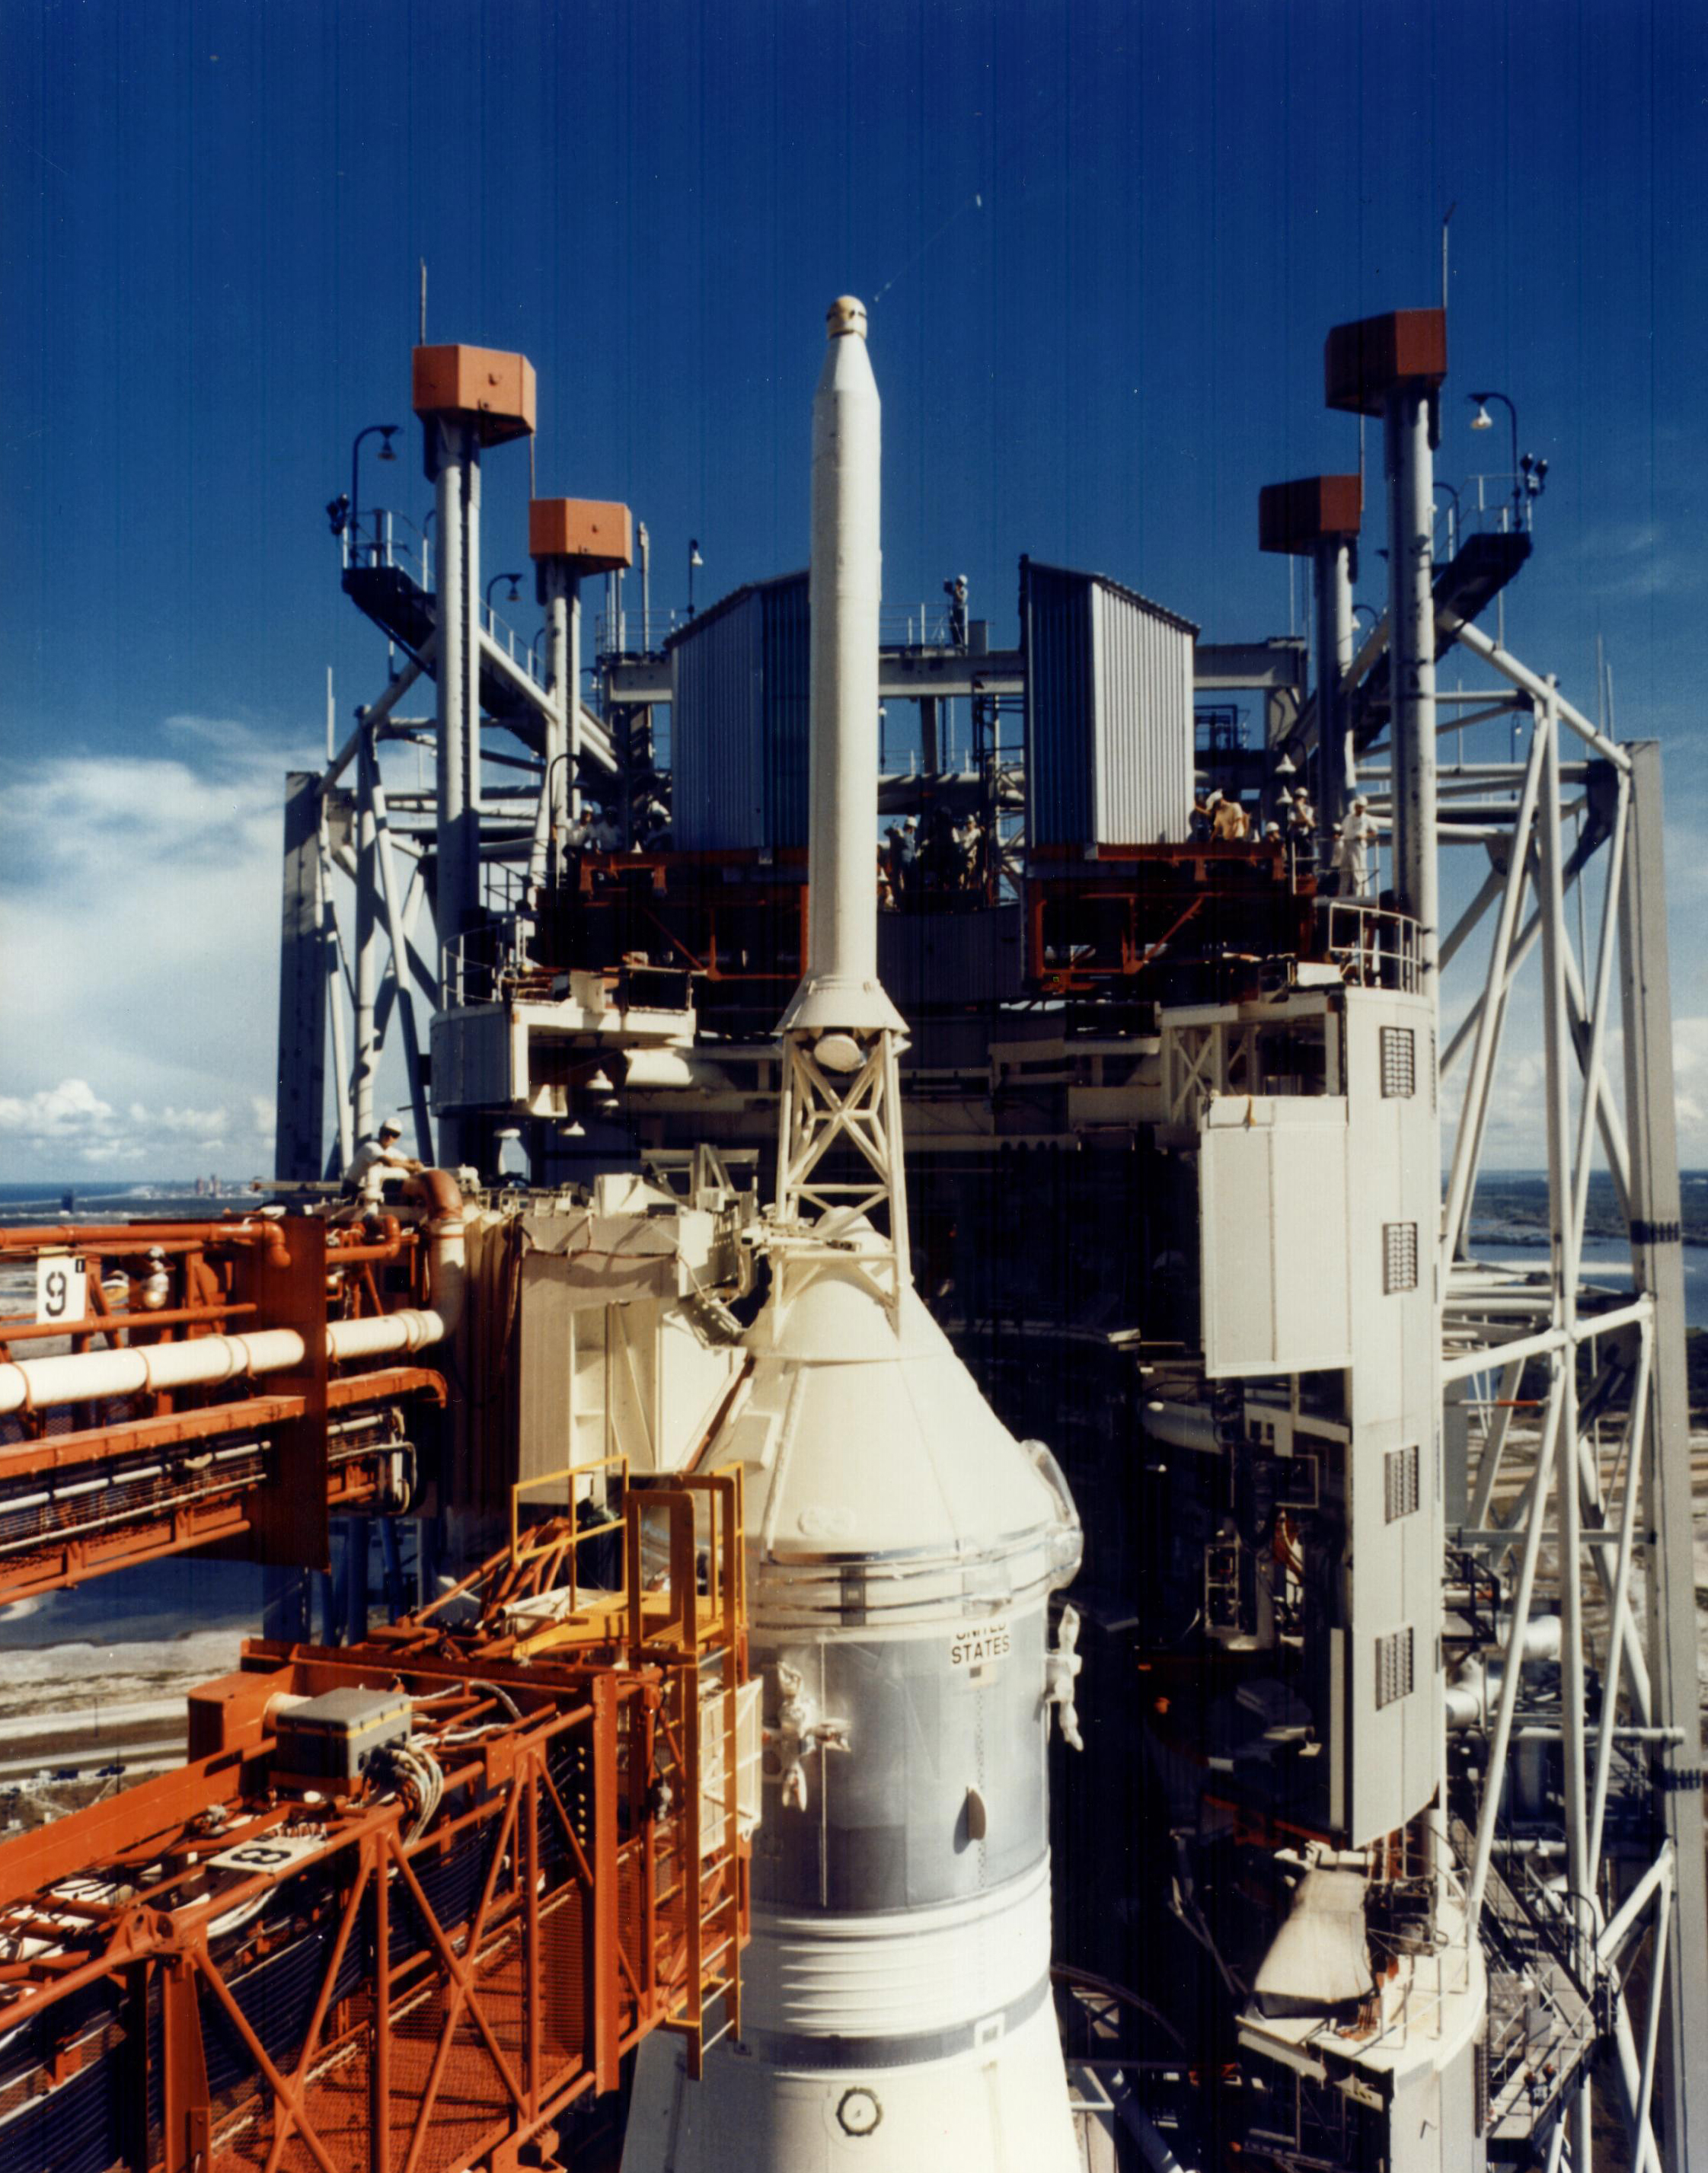 apollo 1969 essay Apollo 11 mission the apollo 11 mission was the first man mission to land on the moon the apollo 11 team left kennedy space center on july 16, 1969 at 13:32utc.